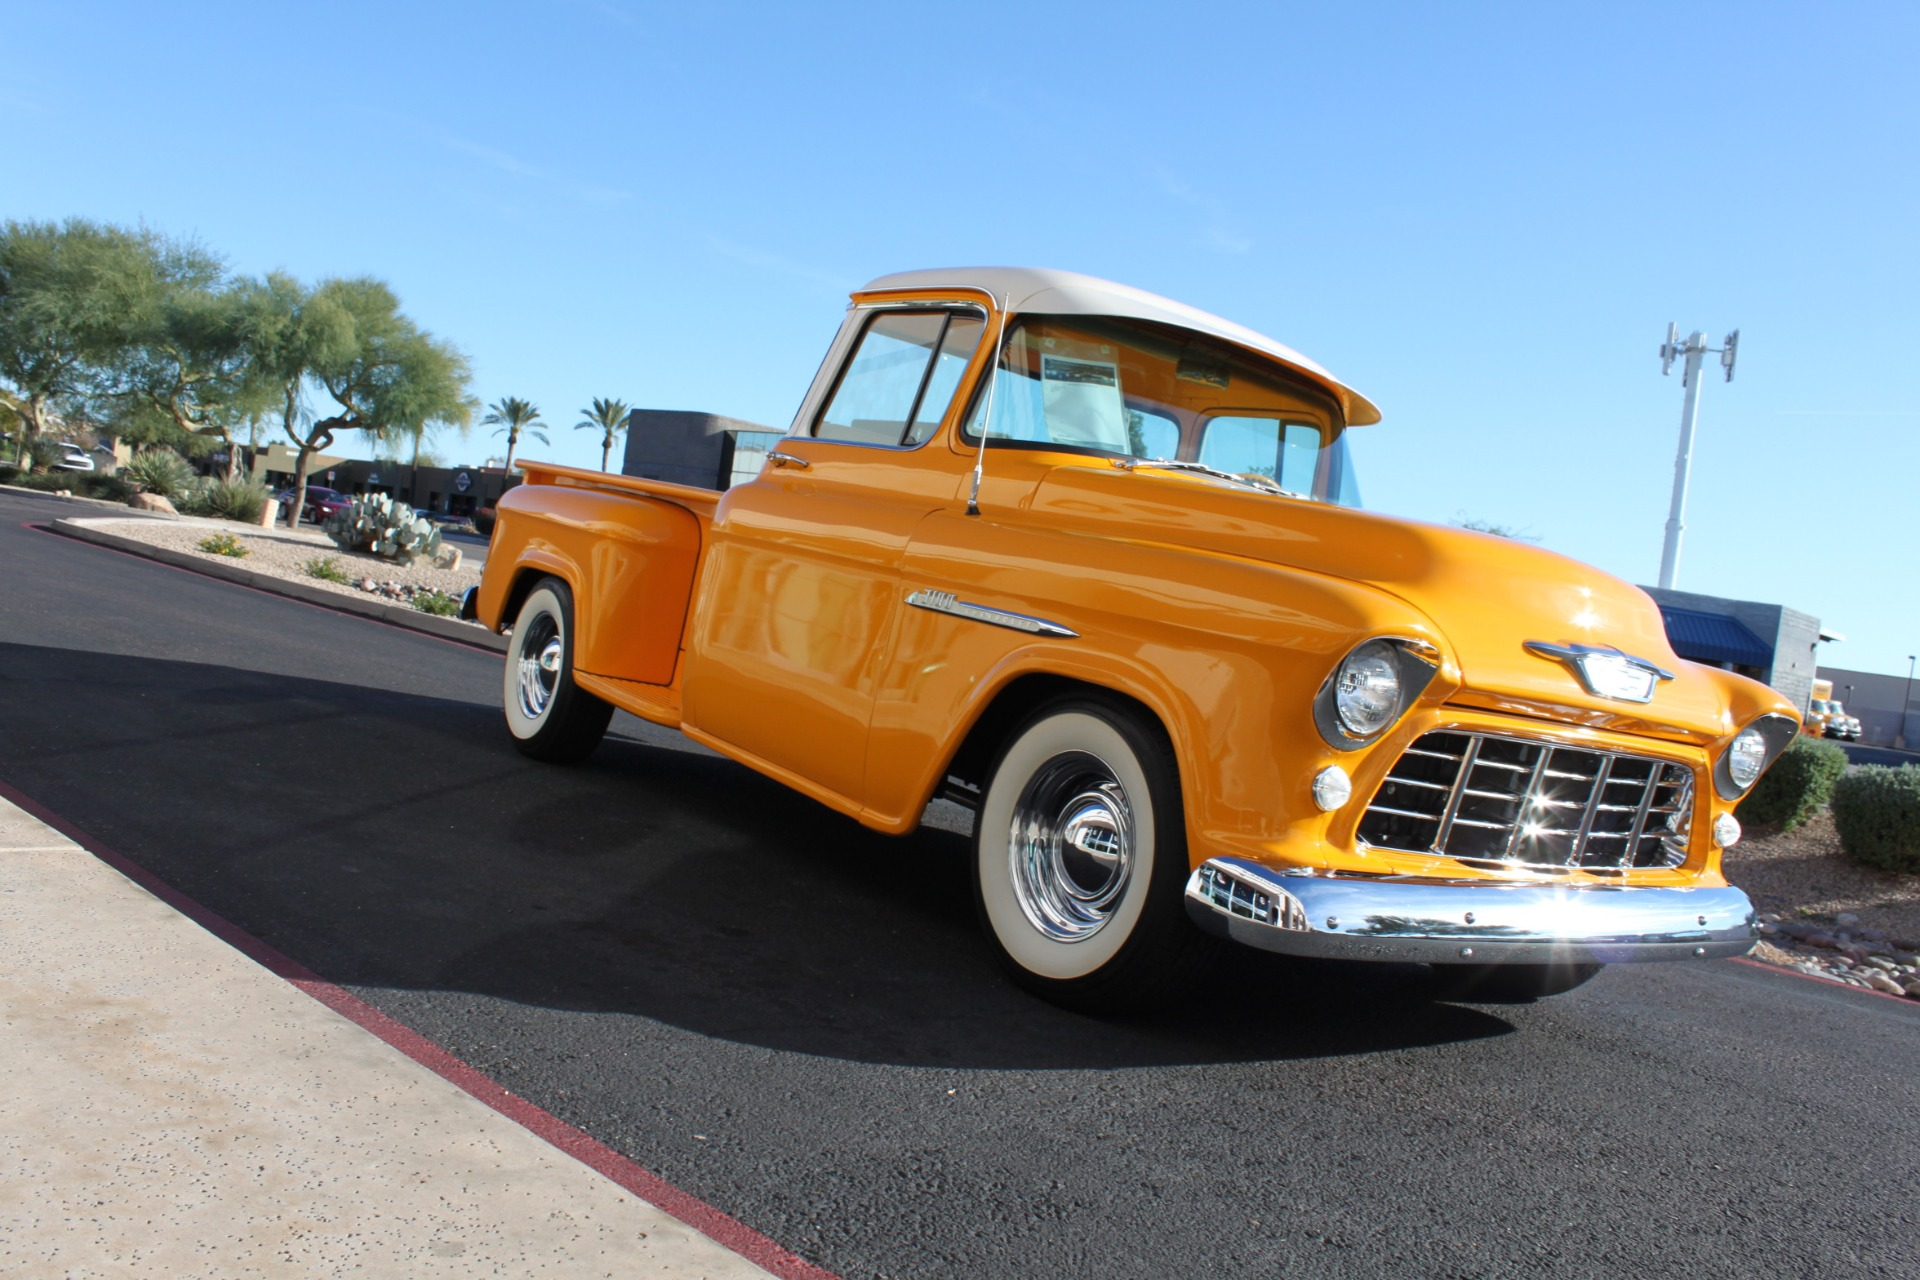 Used-1955-Chevrolet-3100-Pickup-Truck-LS430